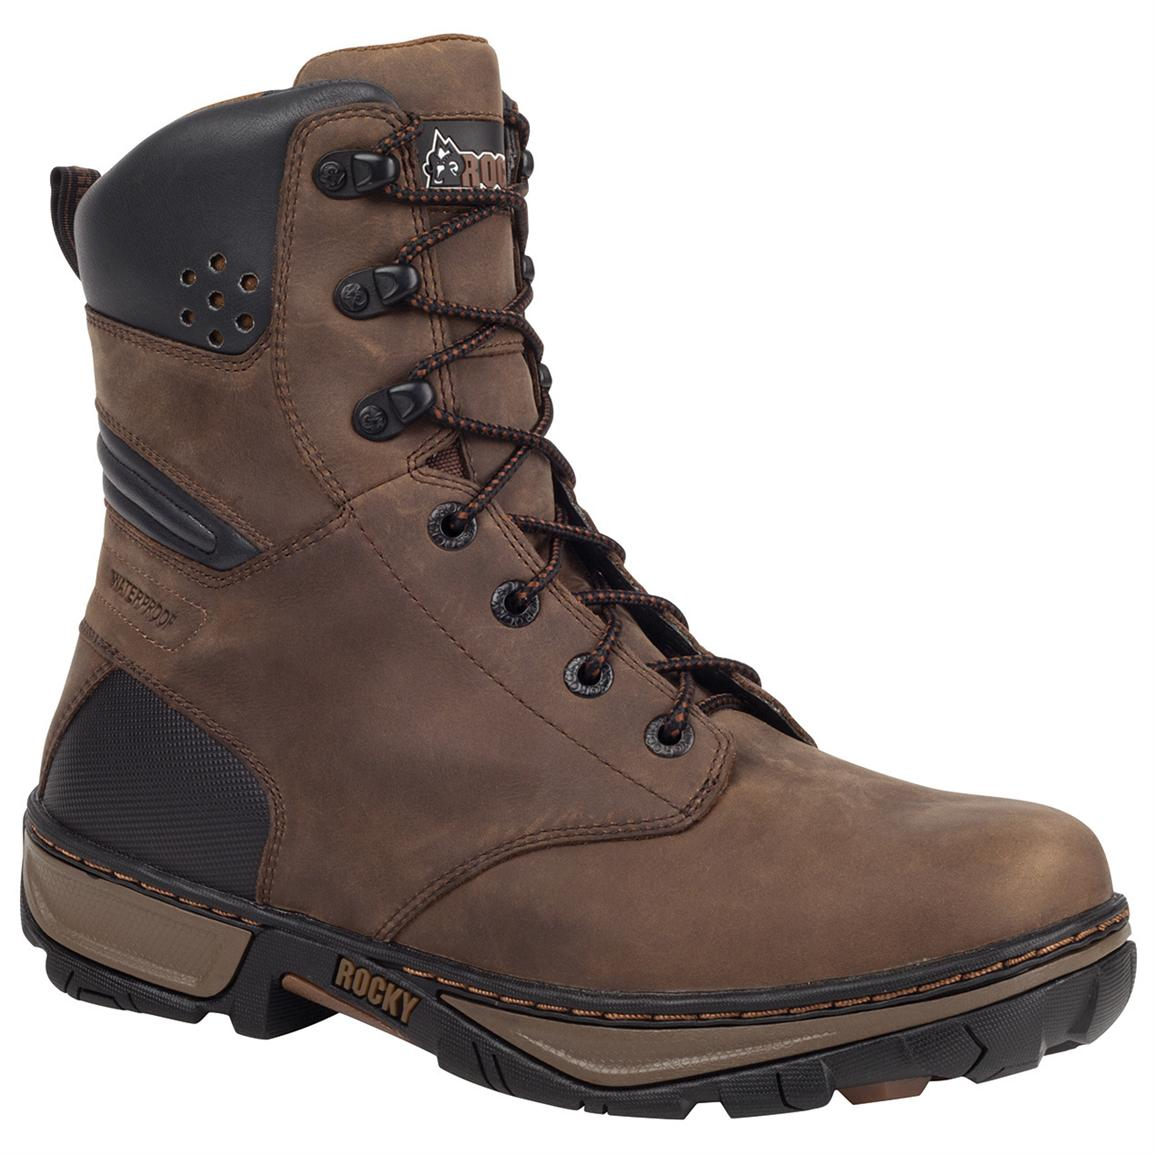 Rocky® Forge Waterproof Work Boots, Darkwood